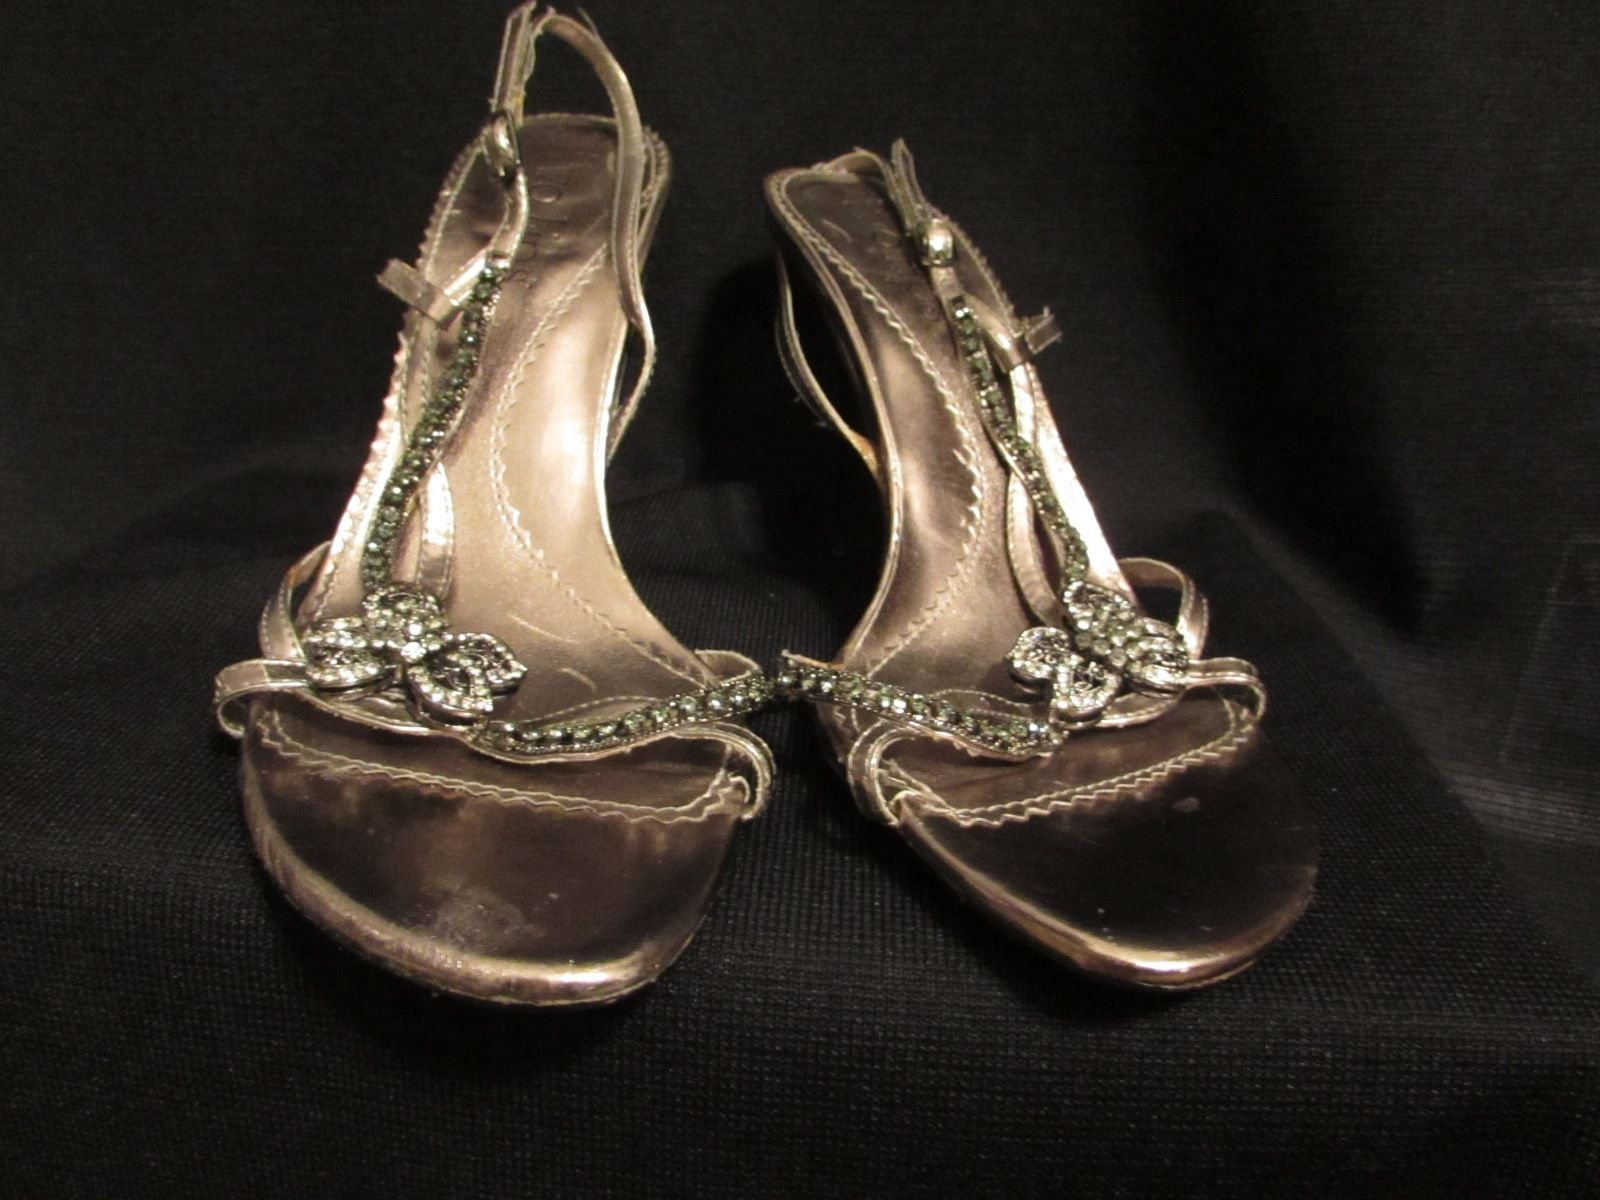 Two Lips Women's Jeweled Upper Statement Silver/Pewter Sandal Size: 9 M